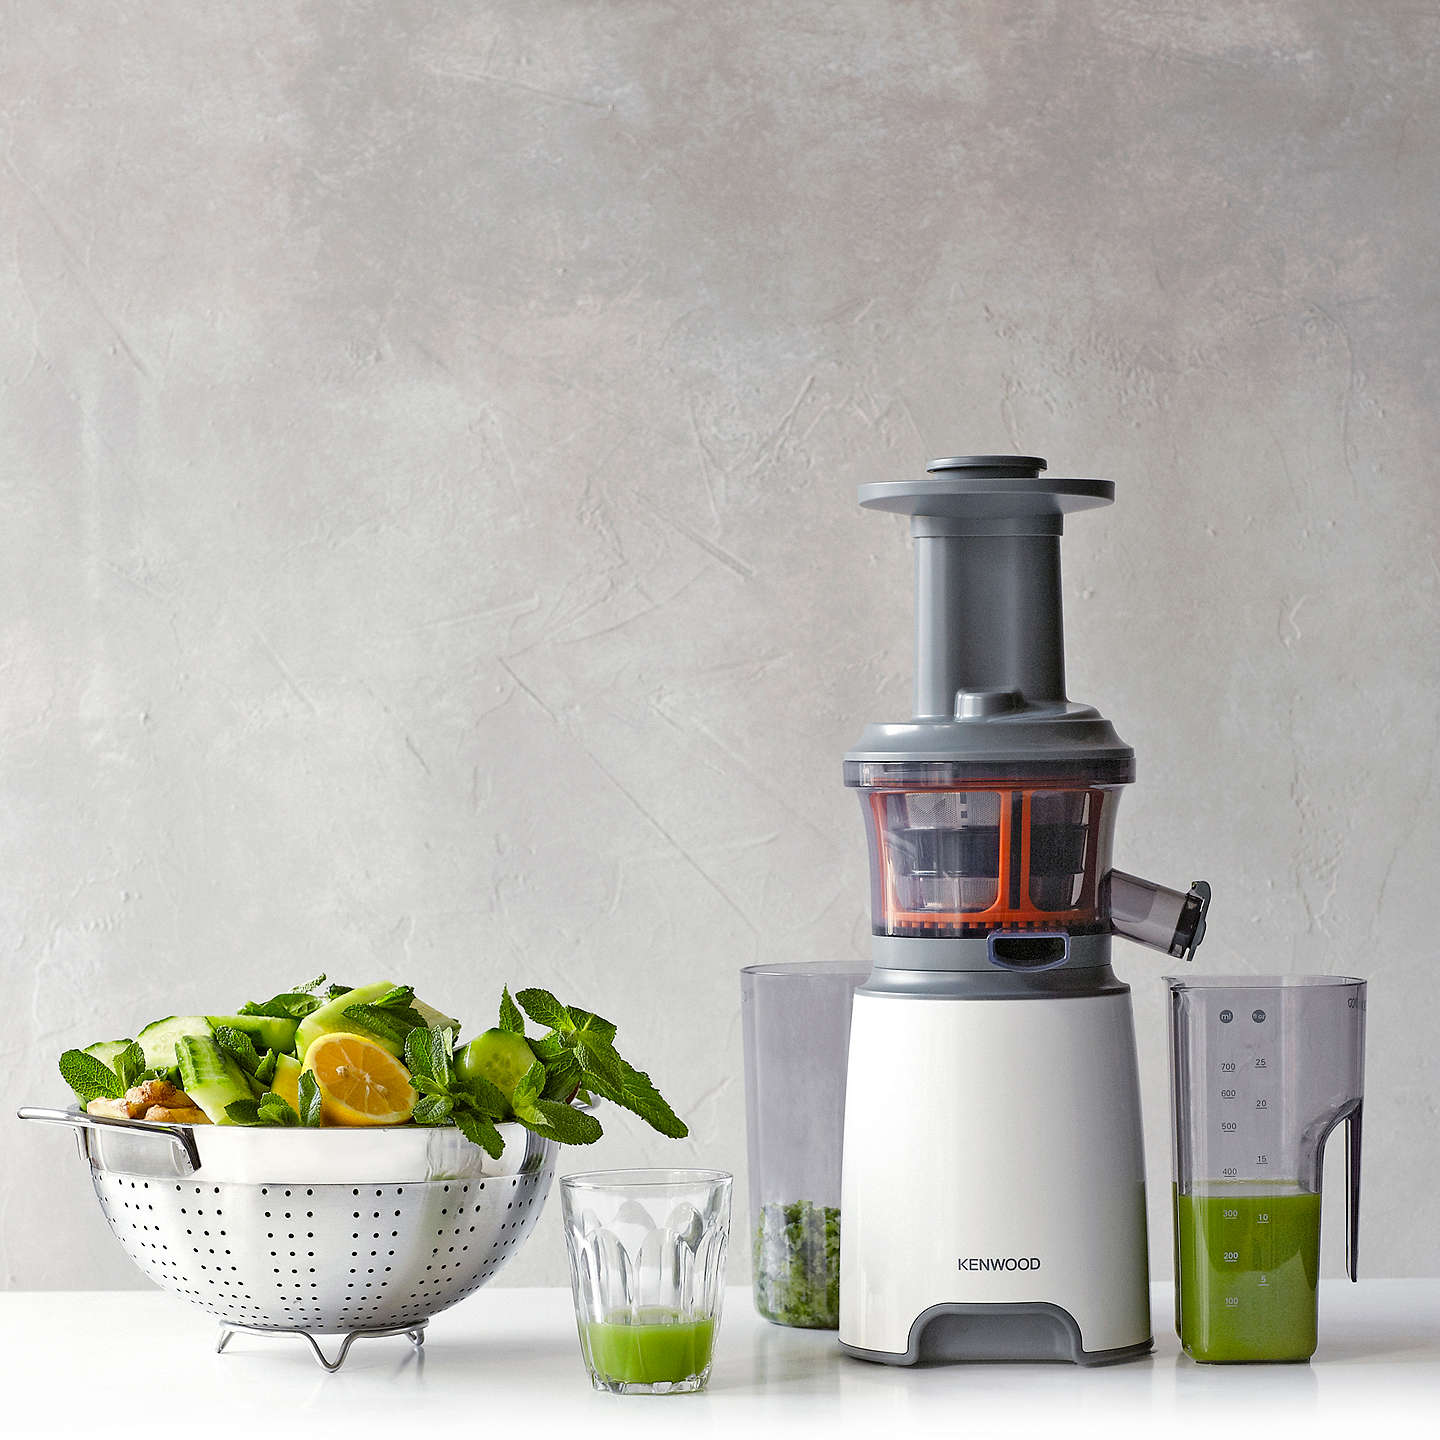 BuyKenwood Purejuice Slow Juicer Online at johnlewis.com